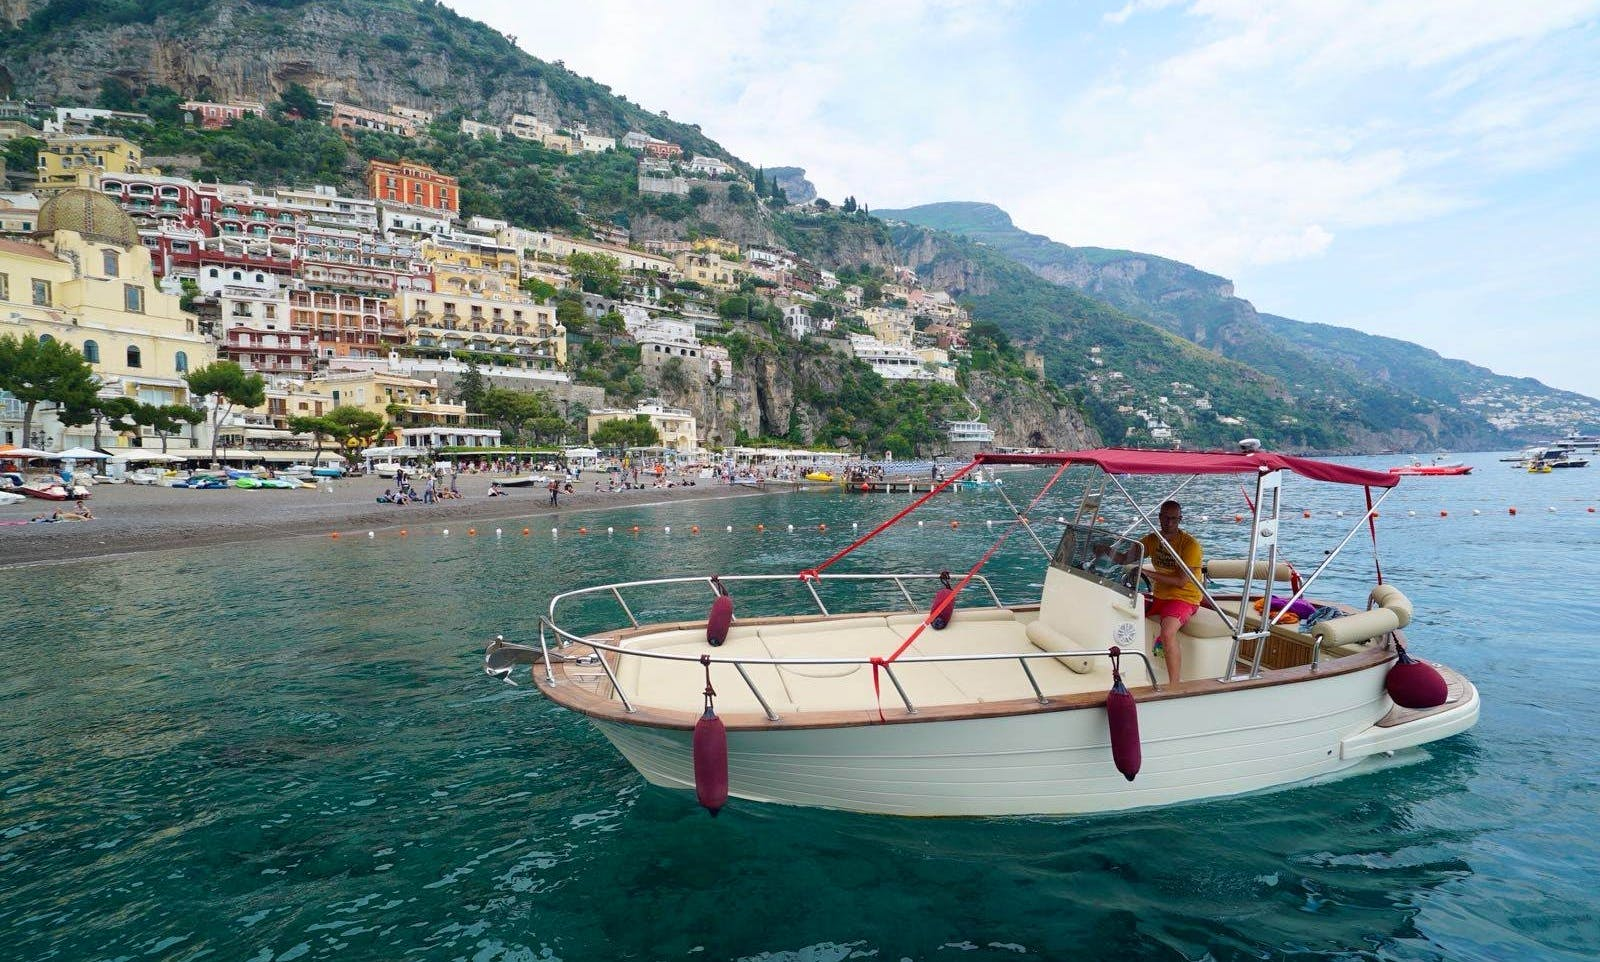 Full day tour along the Amalfi Coast with skipper and guide